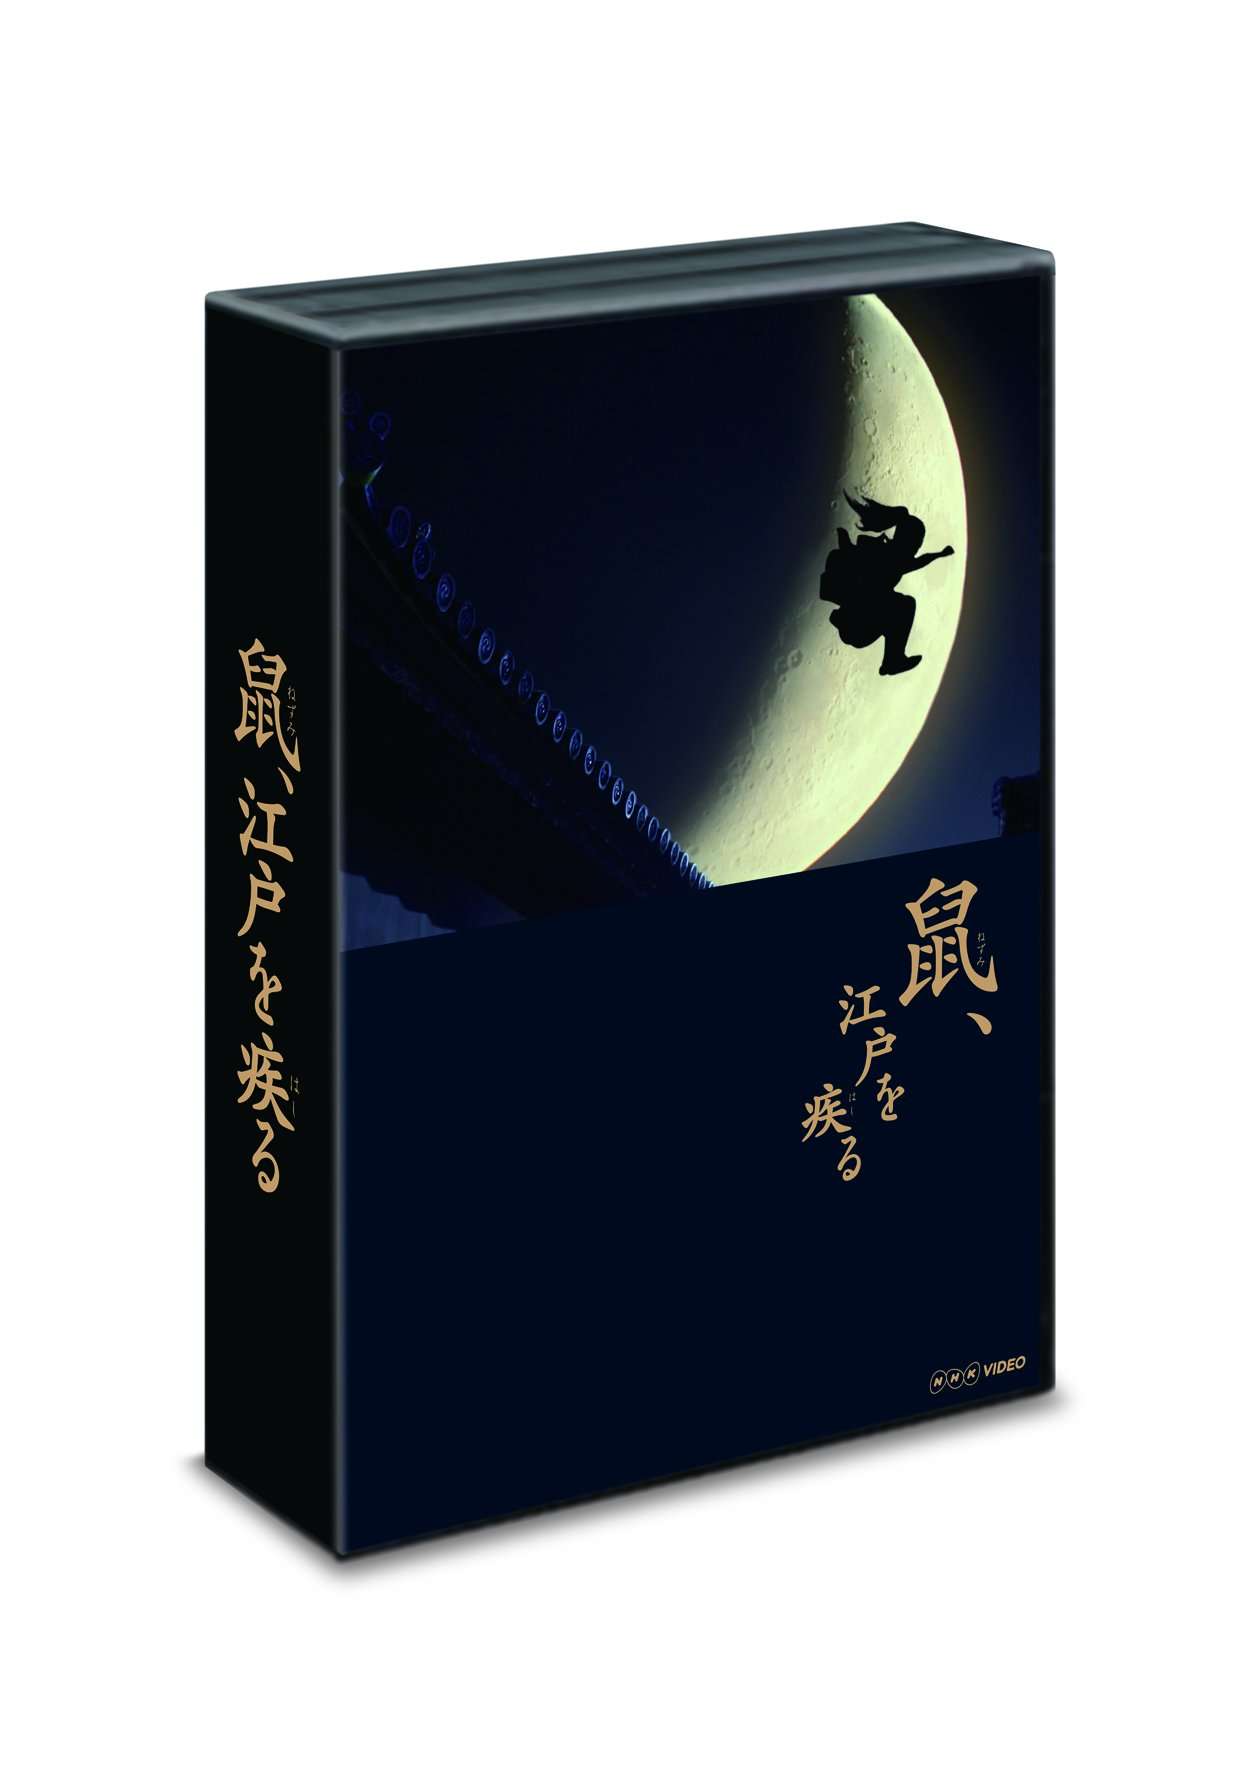 Japanese TV Series - Nezumi, Edo Wo Hashiru Blu-Ray Box (5BDS) [Japan BD] DAXA-4650 by